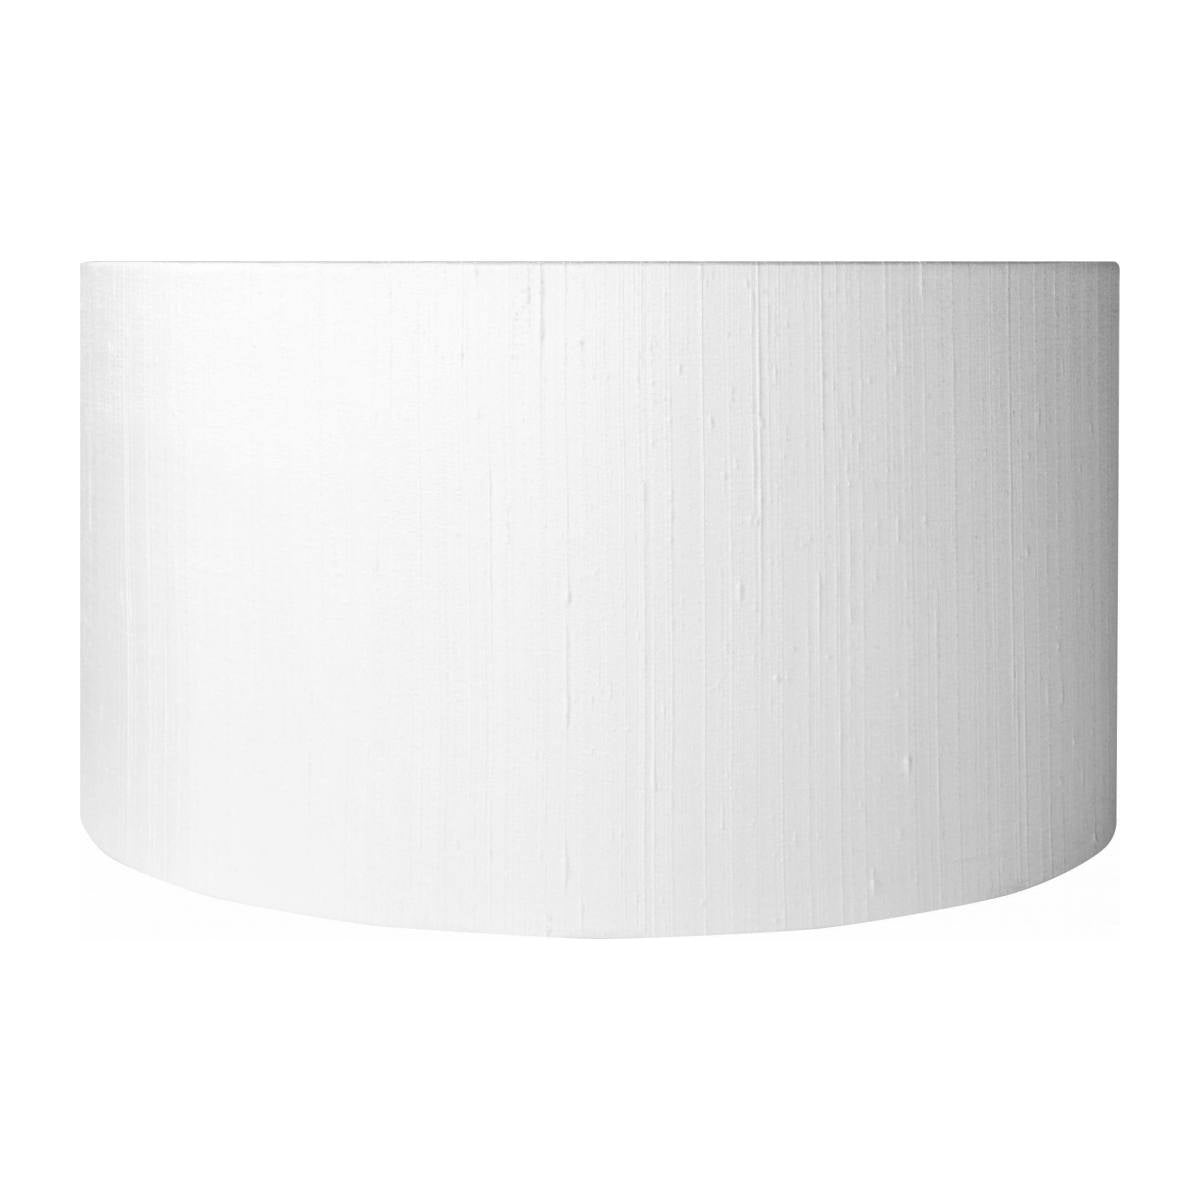 DRUM SILK/ DRUM SHADE 49x26 CM WHITE